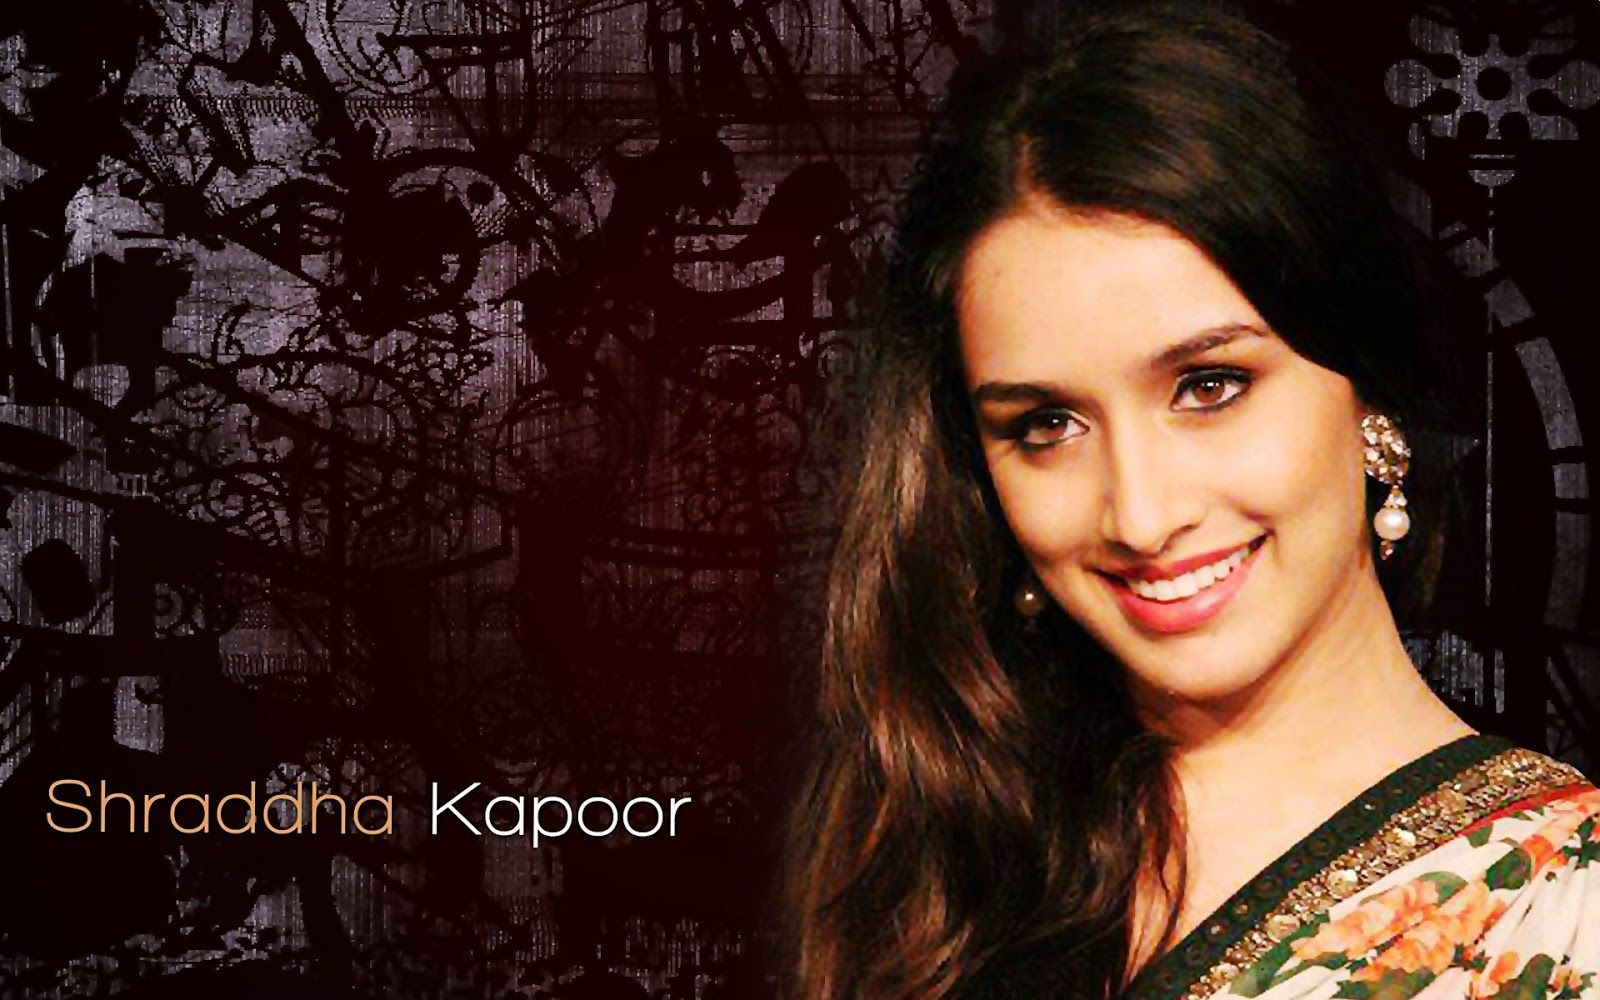 shraddha kapoor hd images , hot photos wallpapers - hd images